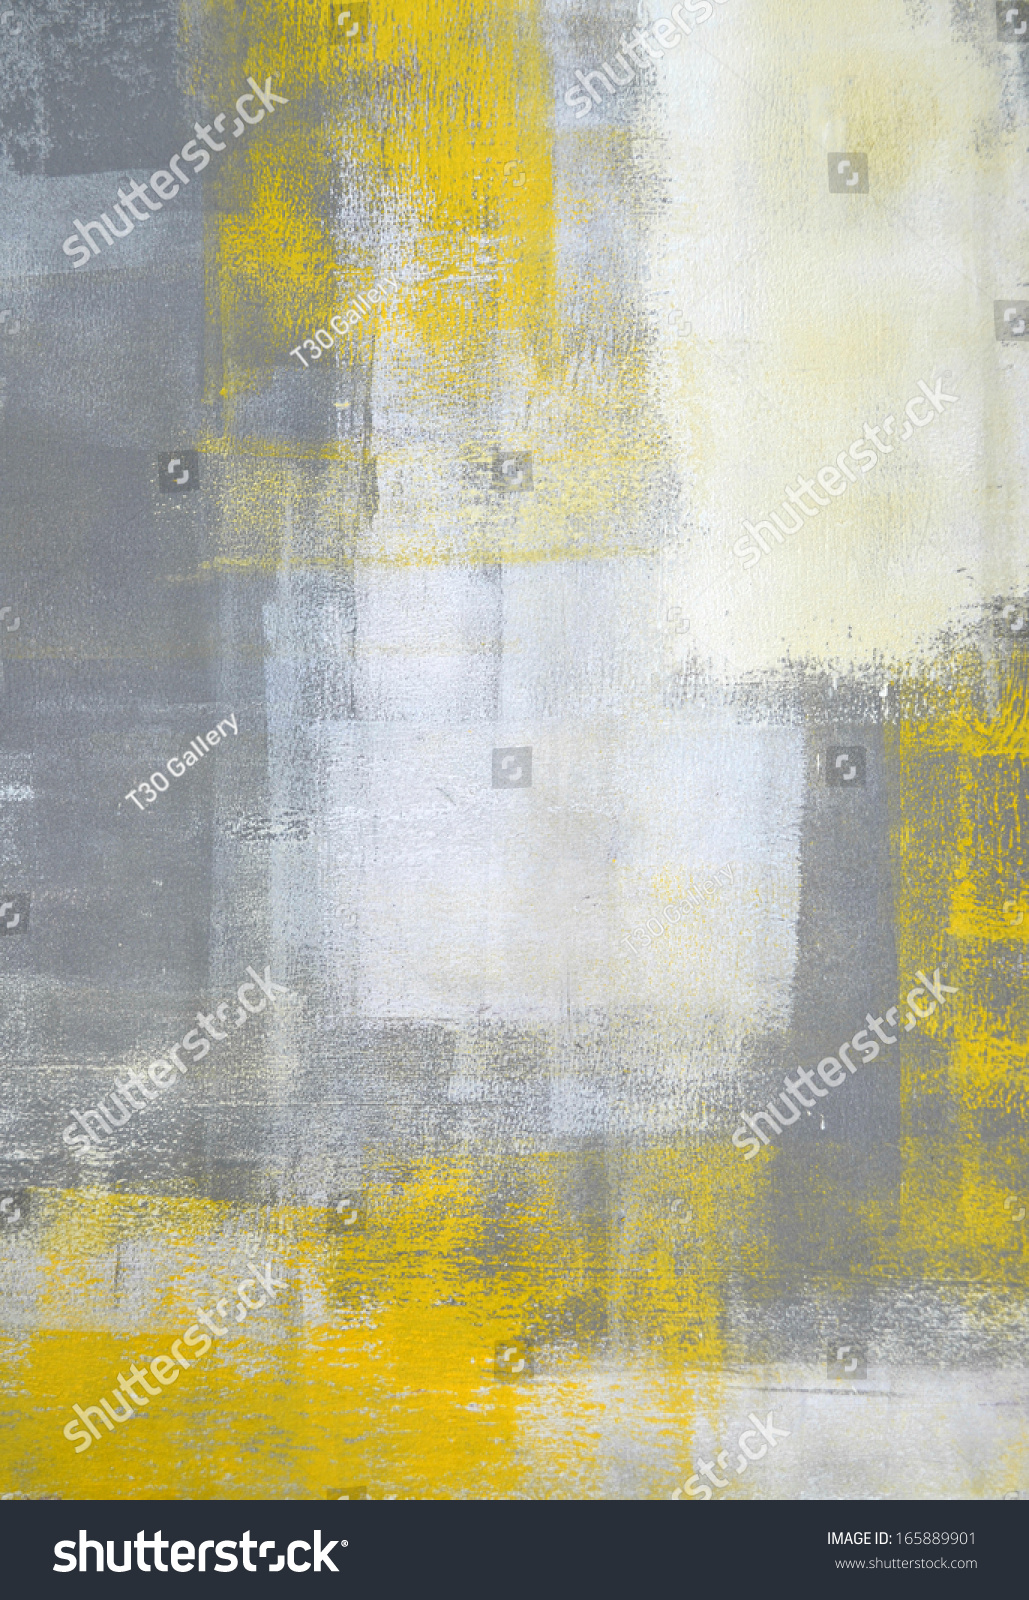 Grey Yellow Abstract Art Painting Stock Illustration ...Yellow Abstract Painting